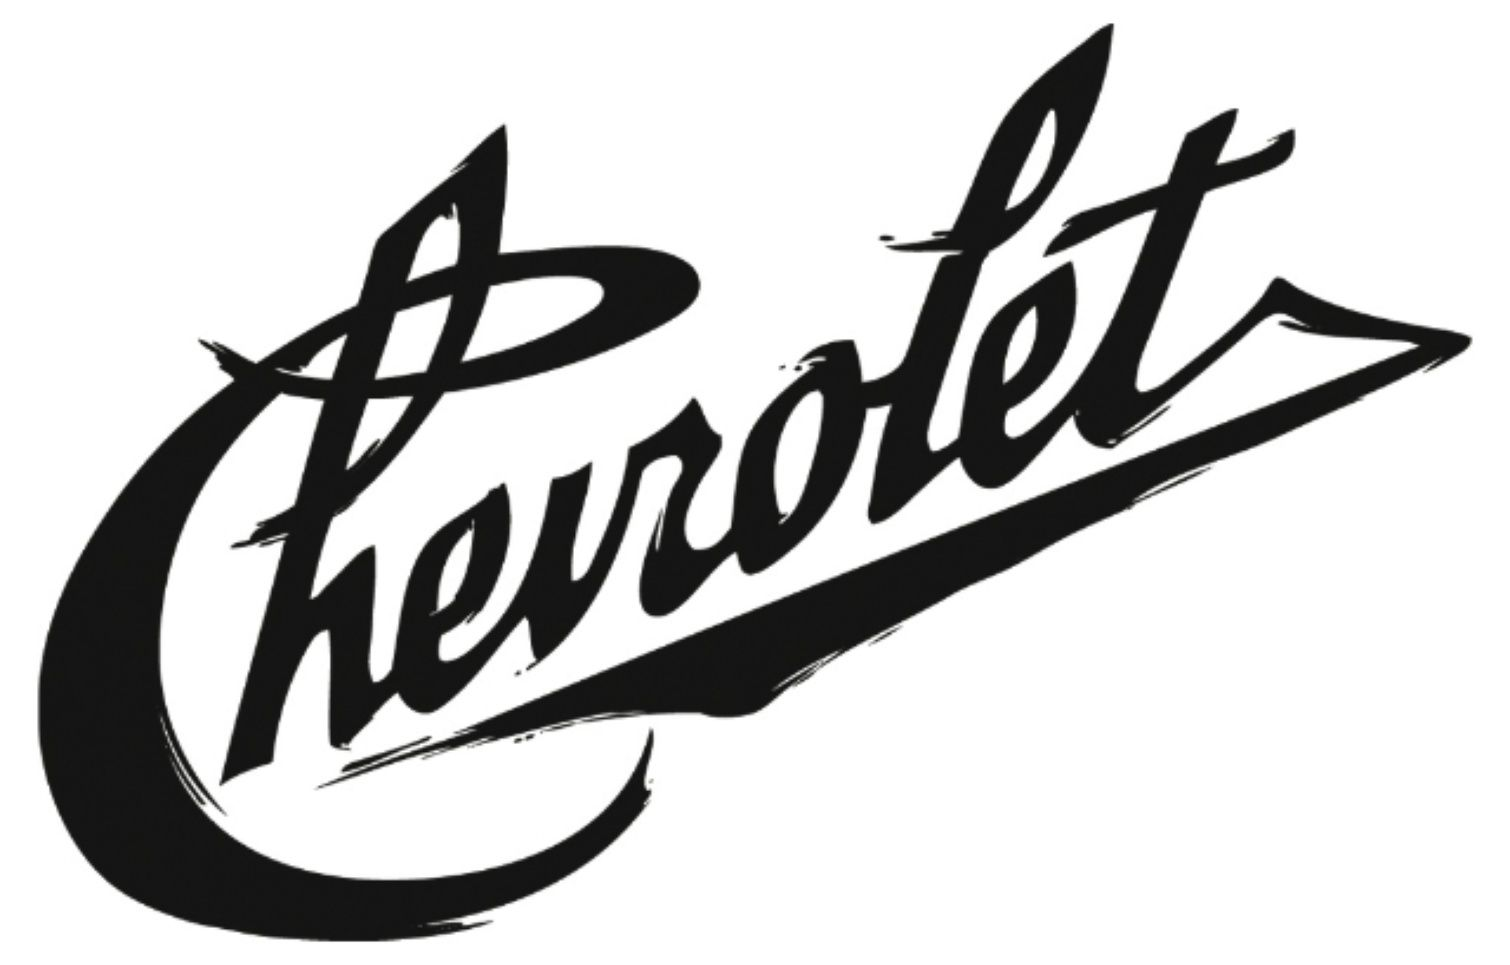 Chevy Classic Logo Graphis Chevy Tattoo Chevy Stickers